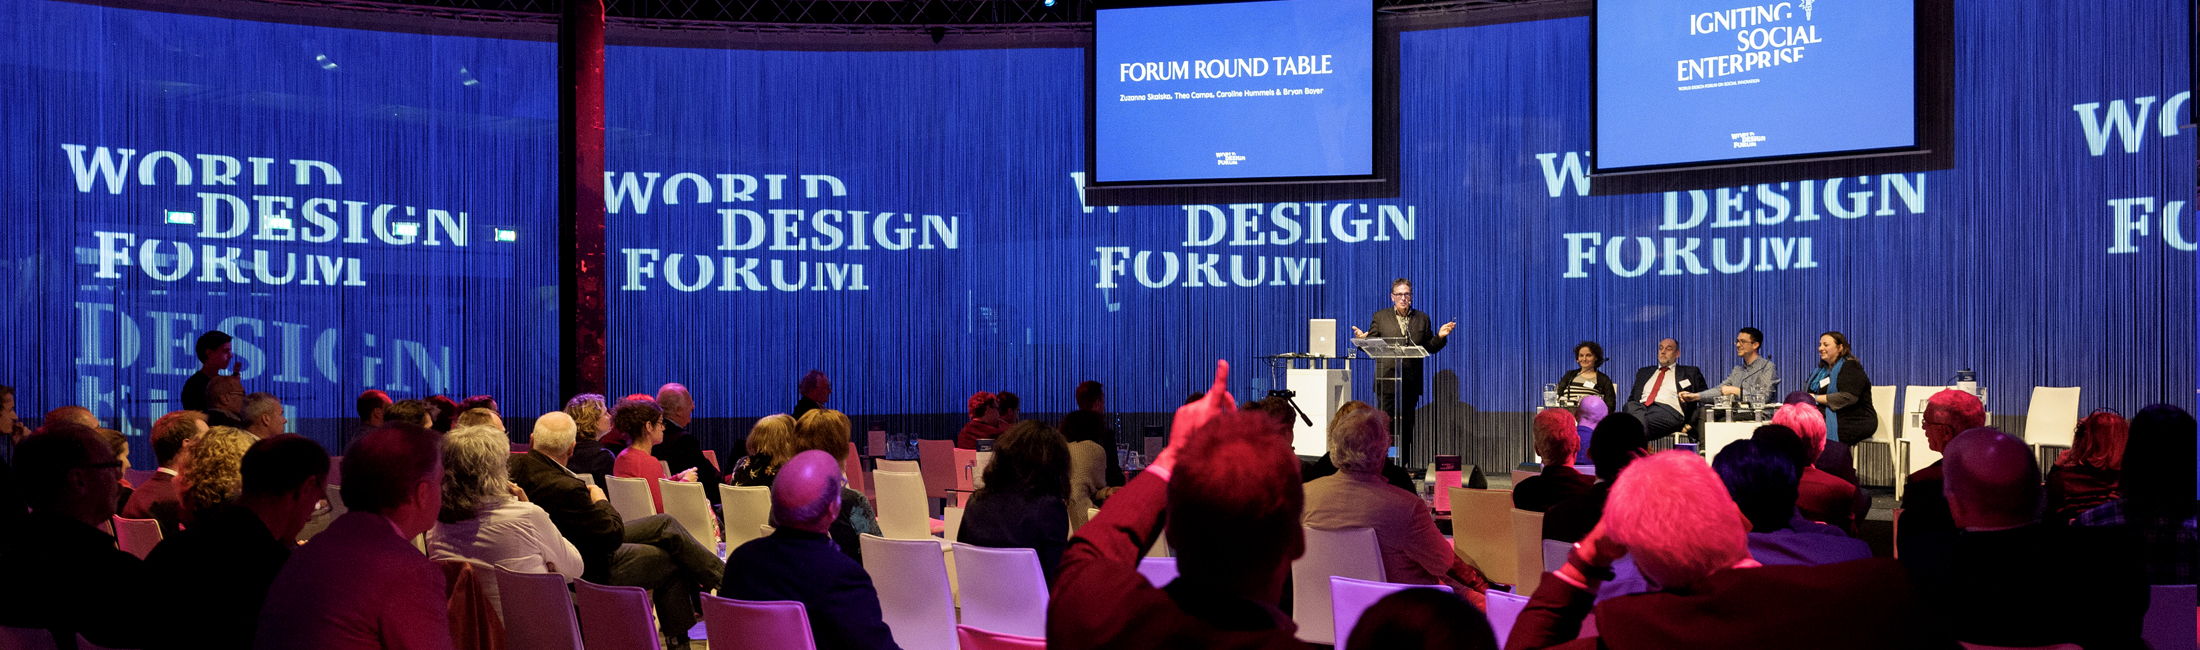 World_Design_Forum_slider_071